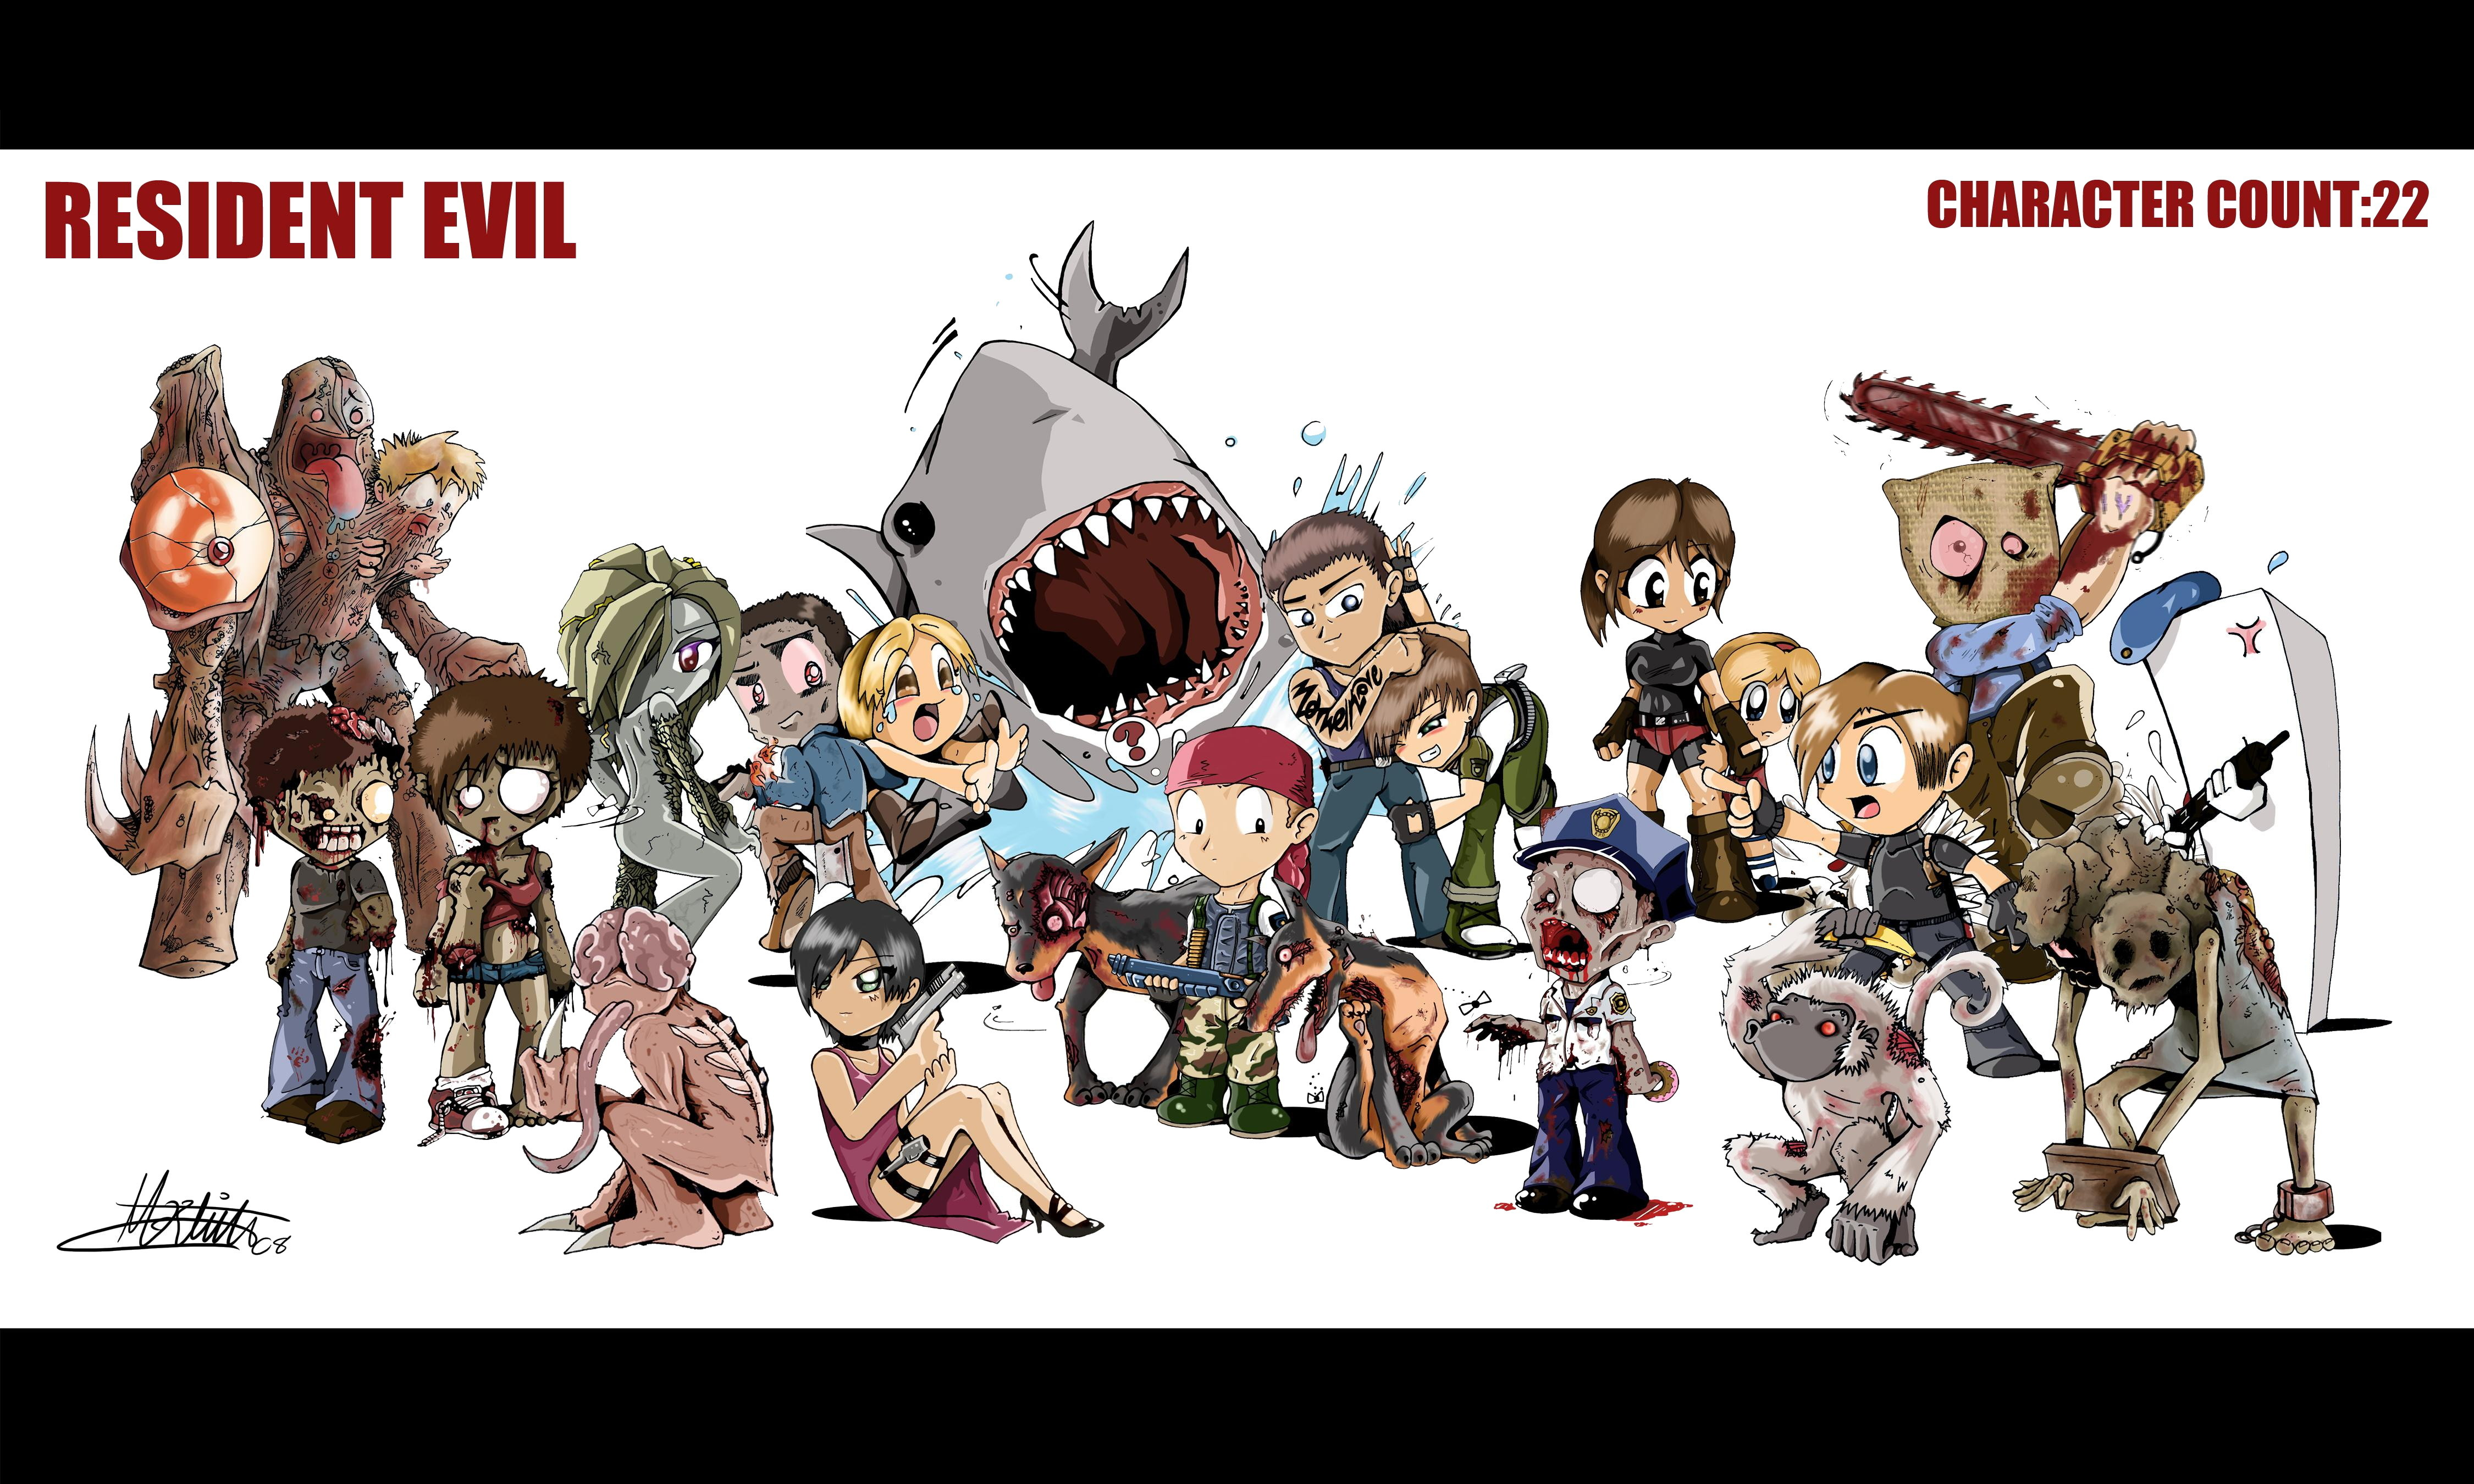 Resident Evil Monsters Chibi HD Wallpaper